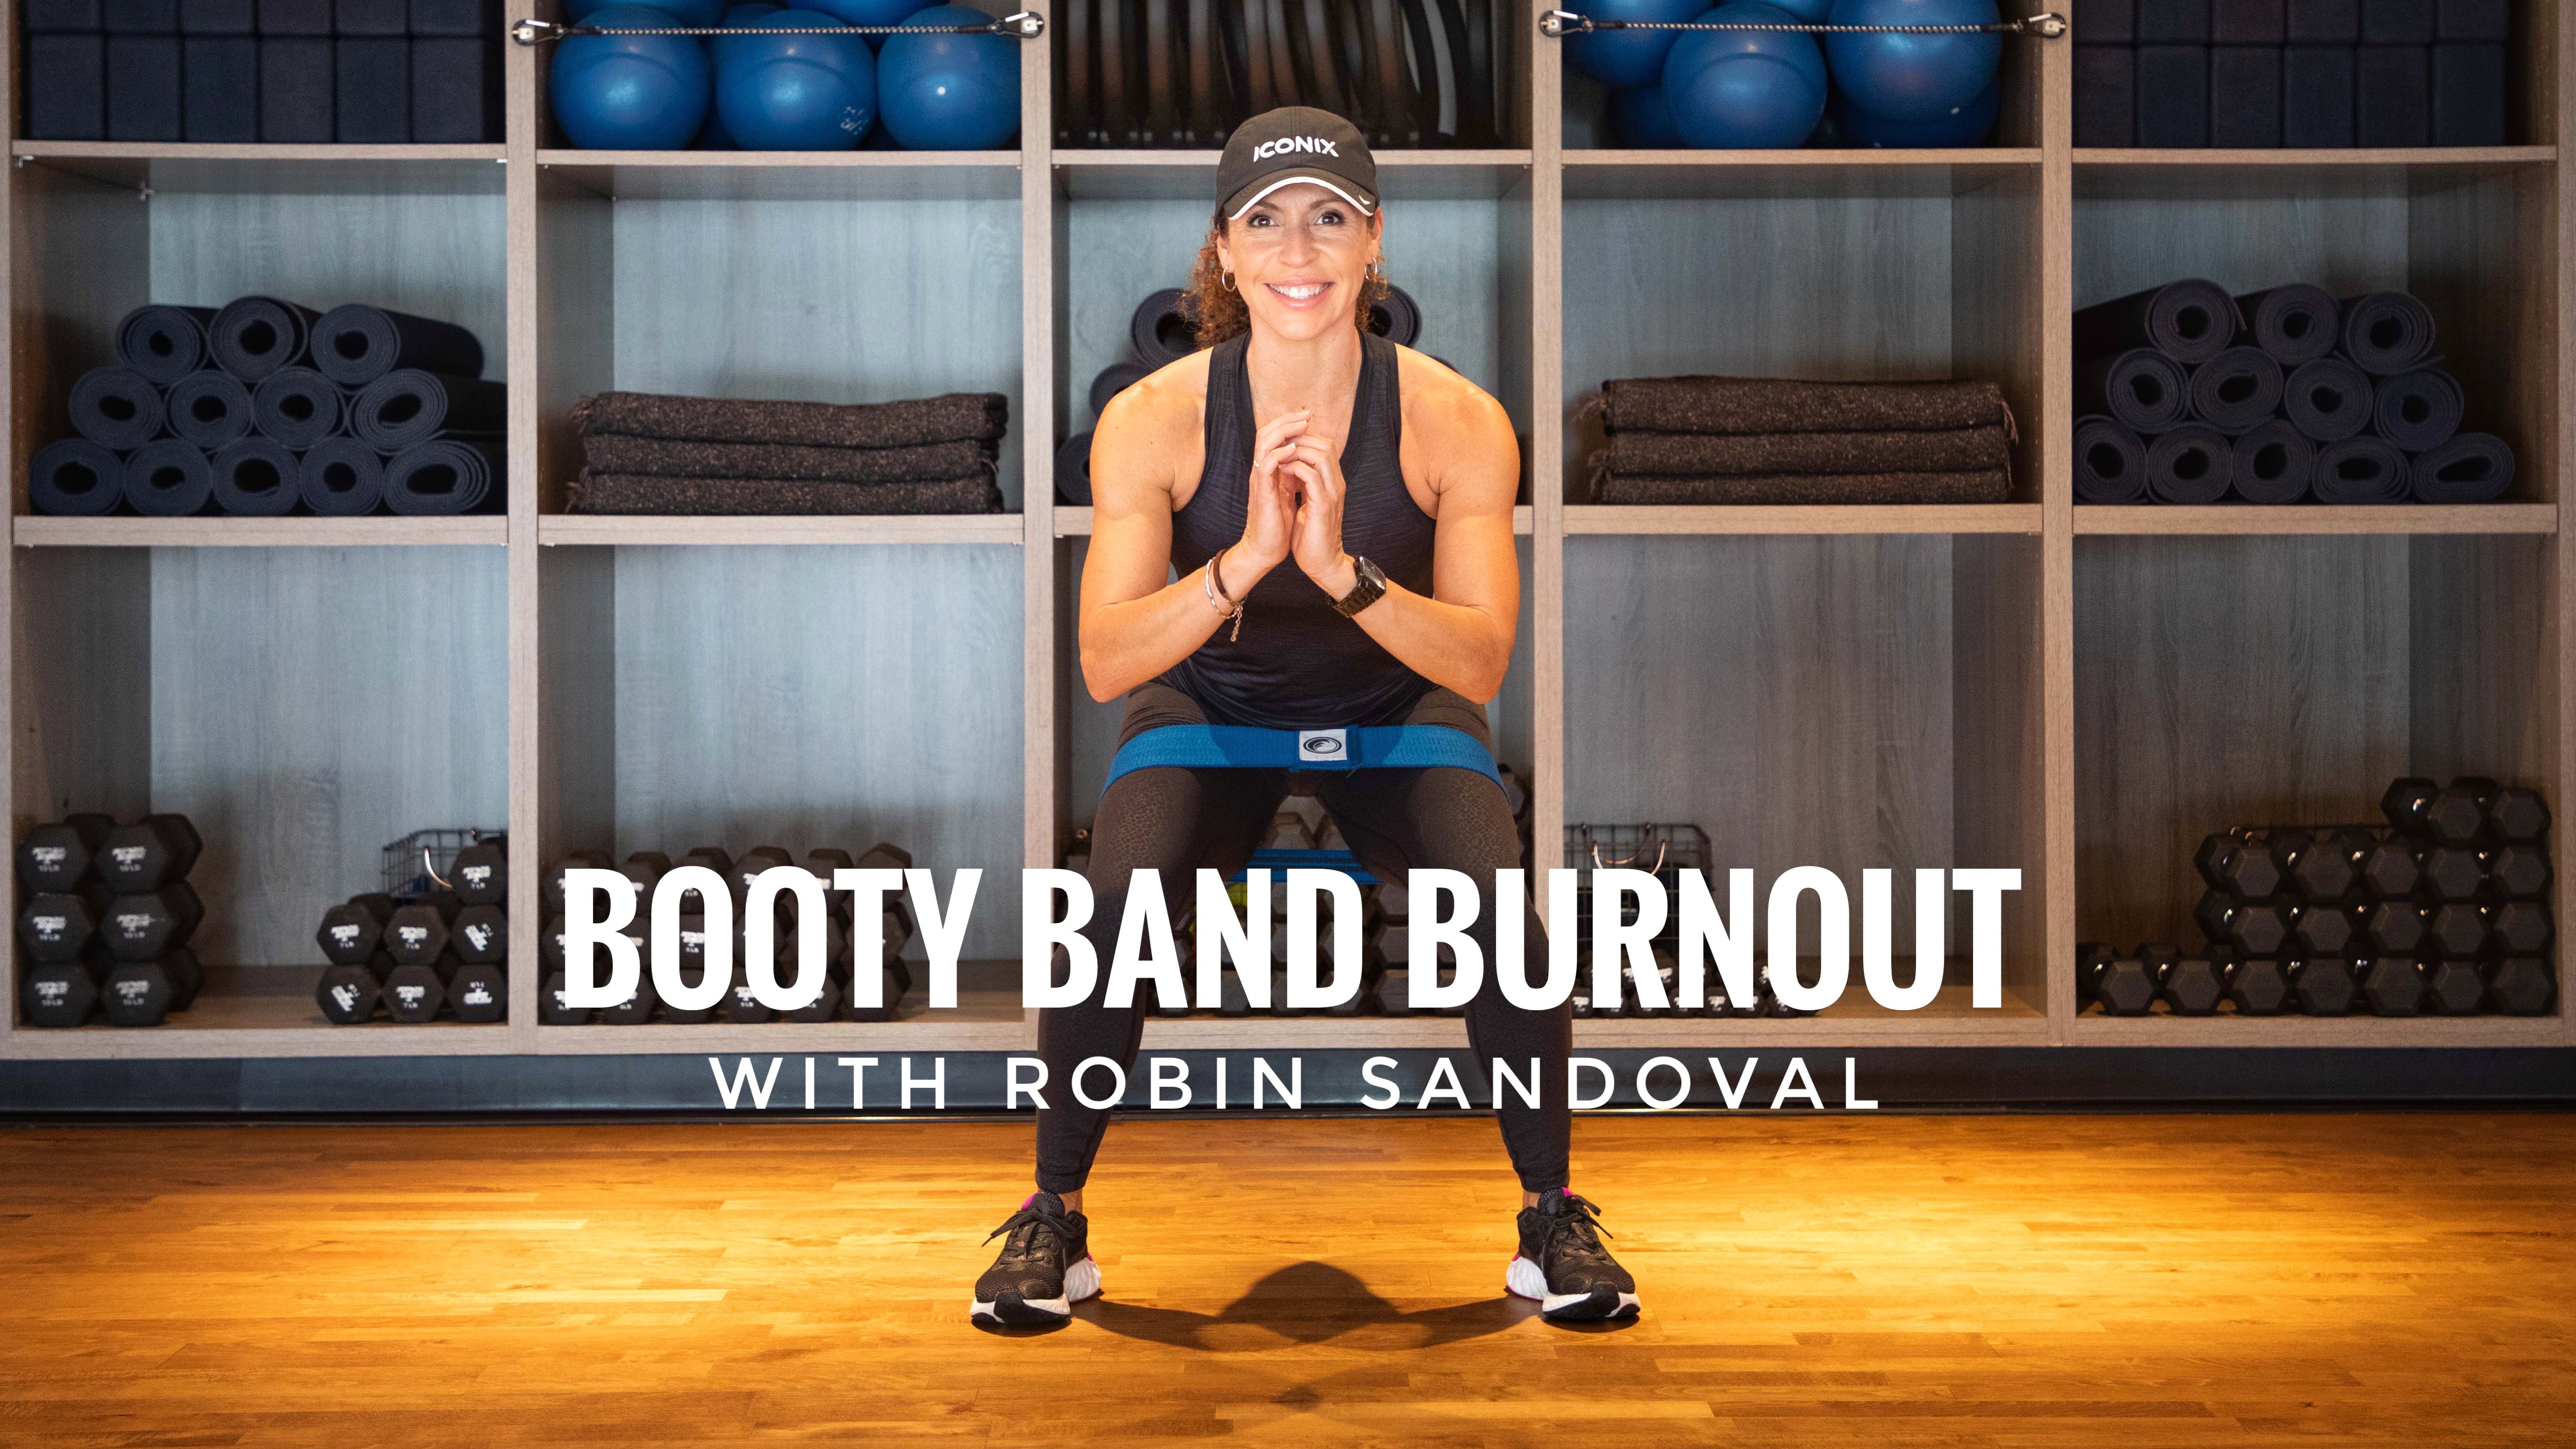 Booty Band Burnout with Robin Sandoval